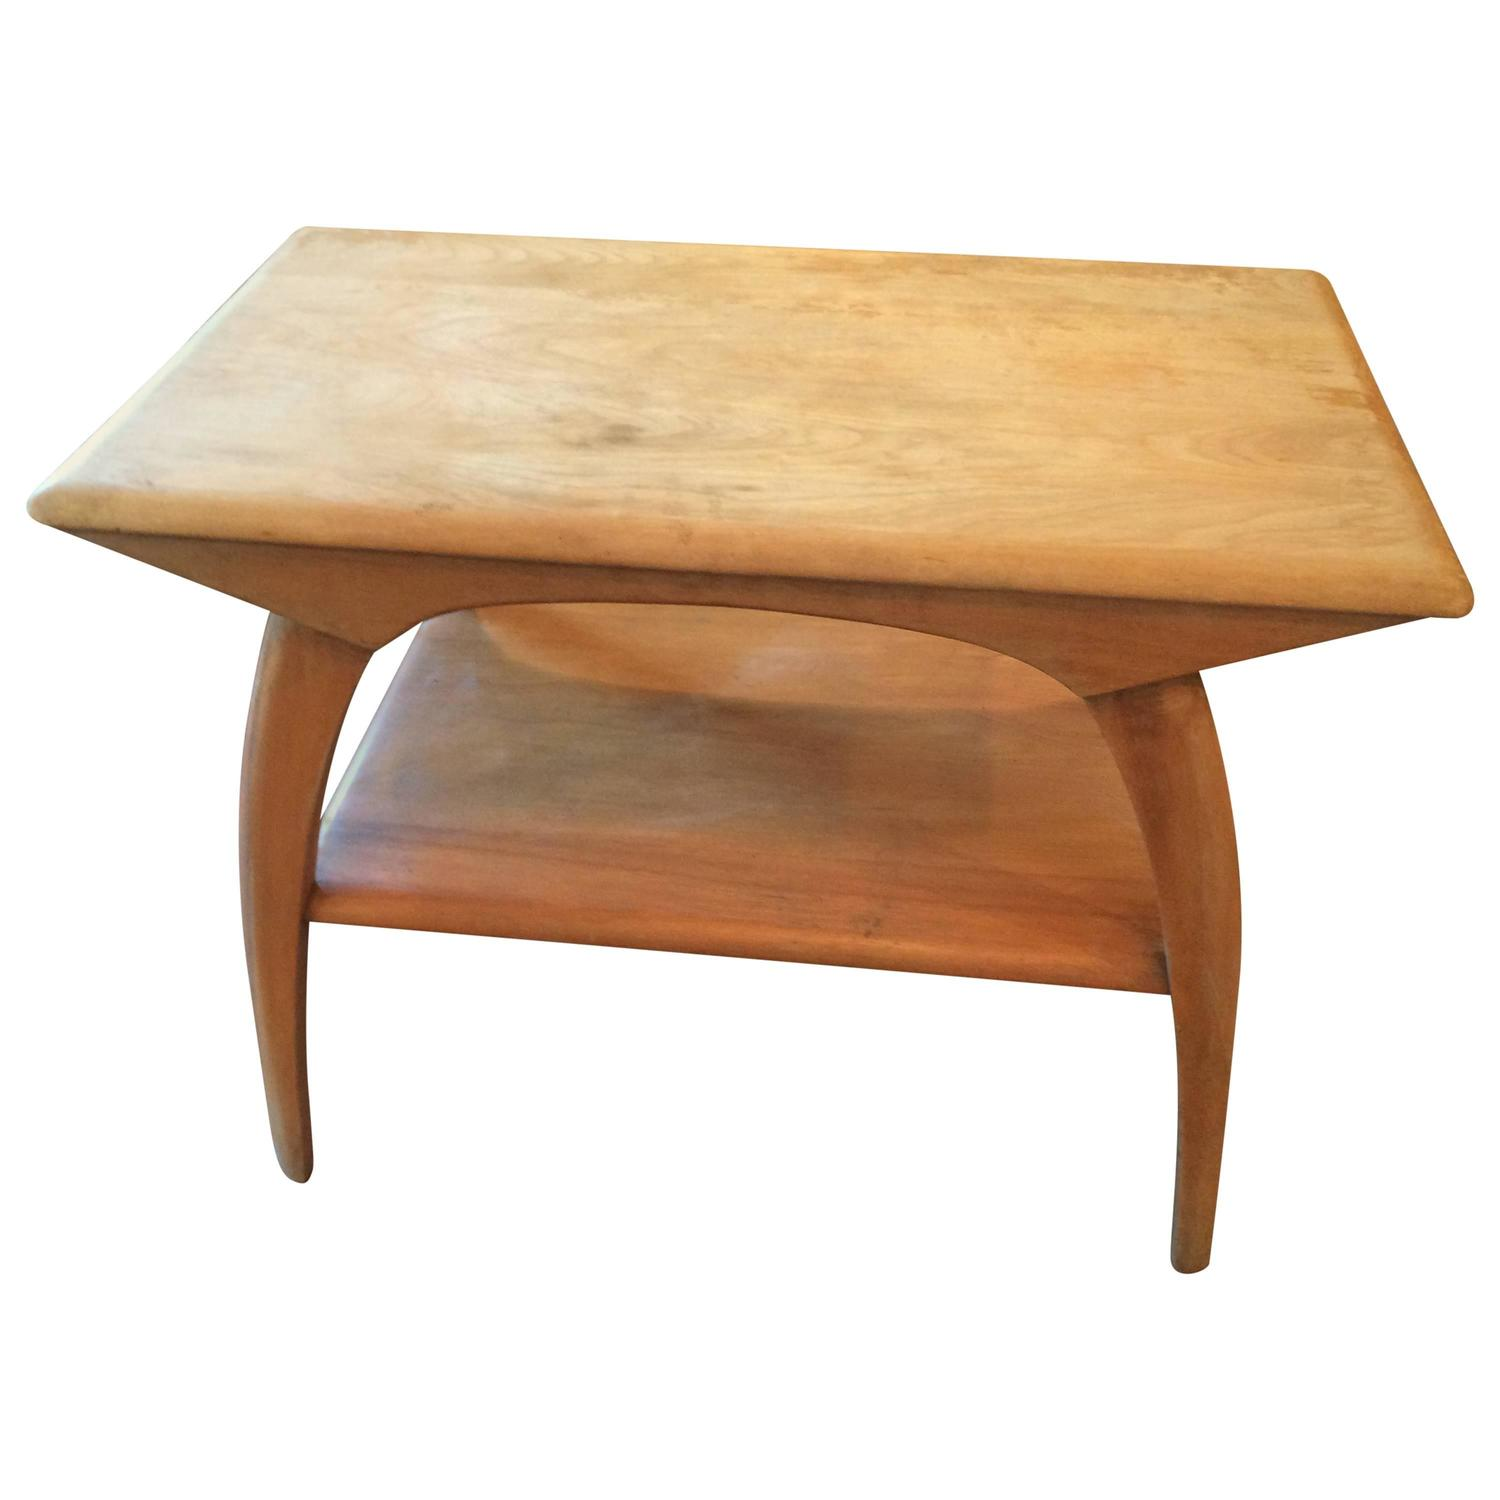 Heywood wakefield side or end table at 1stdibs geotapseo Image collections